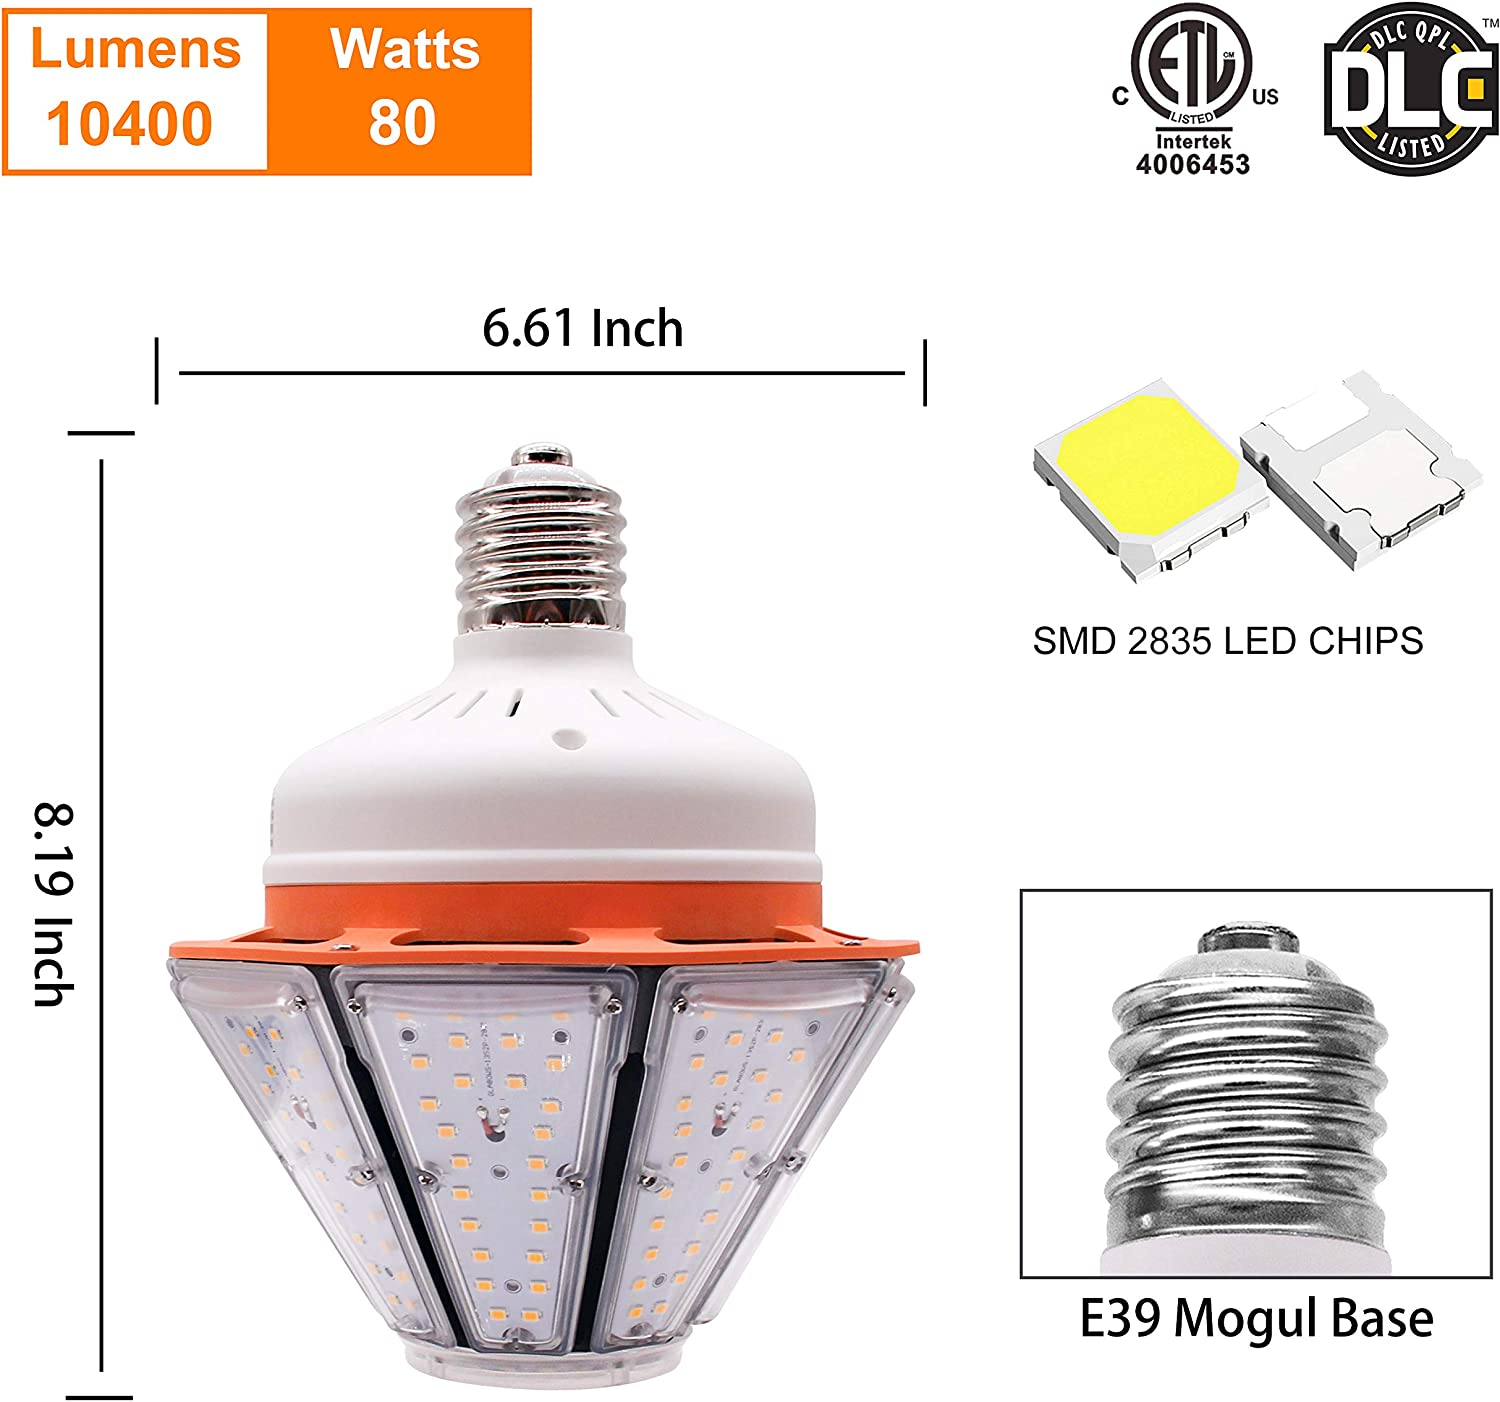 E39 Mogul Base 3,000K Warm White Open Semi-Closed Enclosed Fixtures Household Industrial and Commercial Light Warehouse Lamp Backyard Lighting 100 Watt LED Corn Bulb